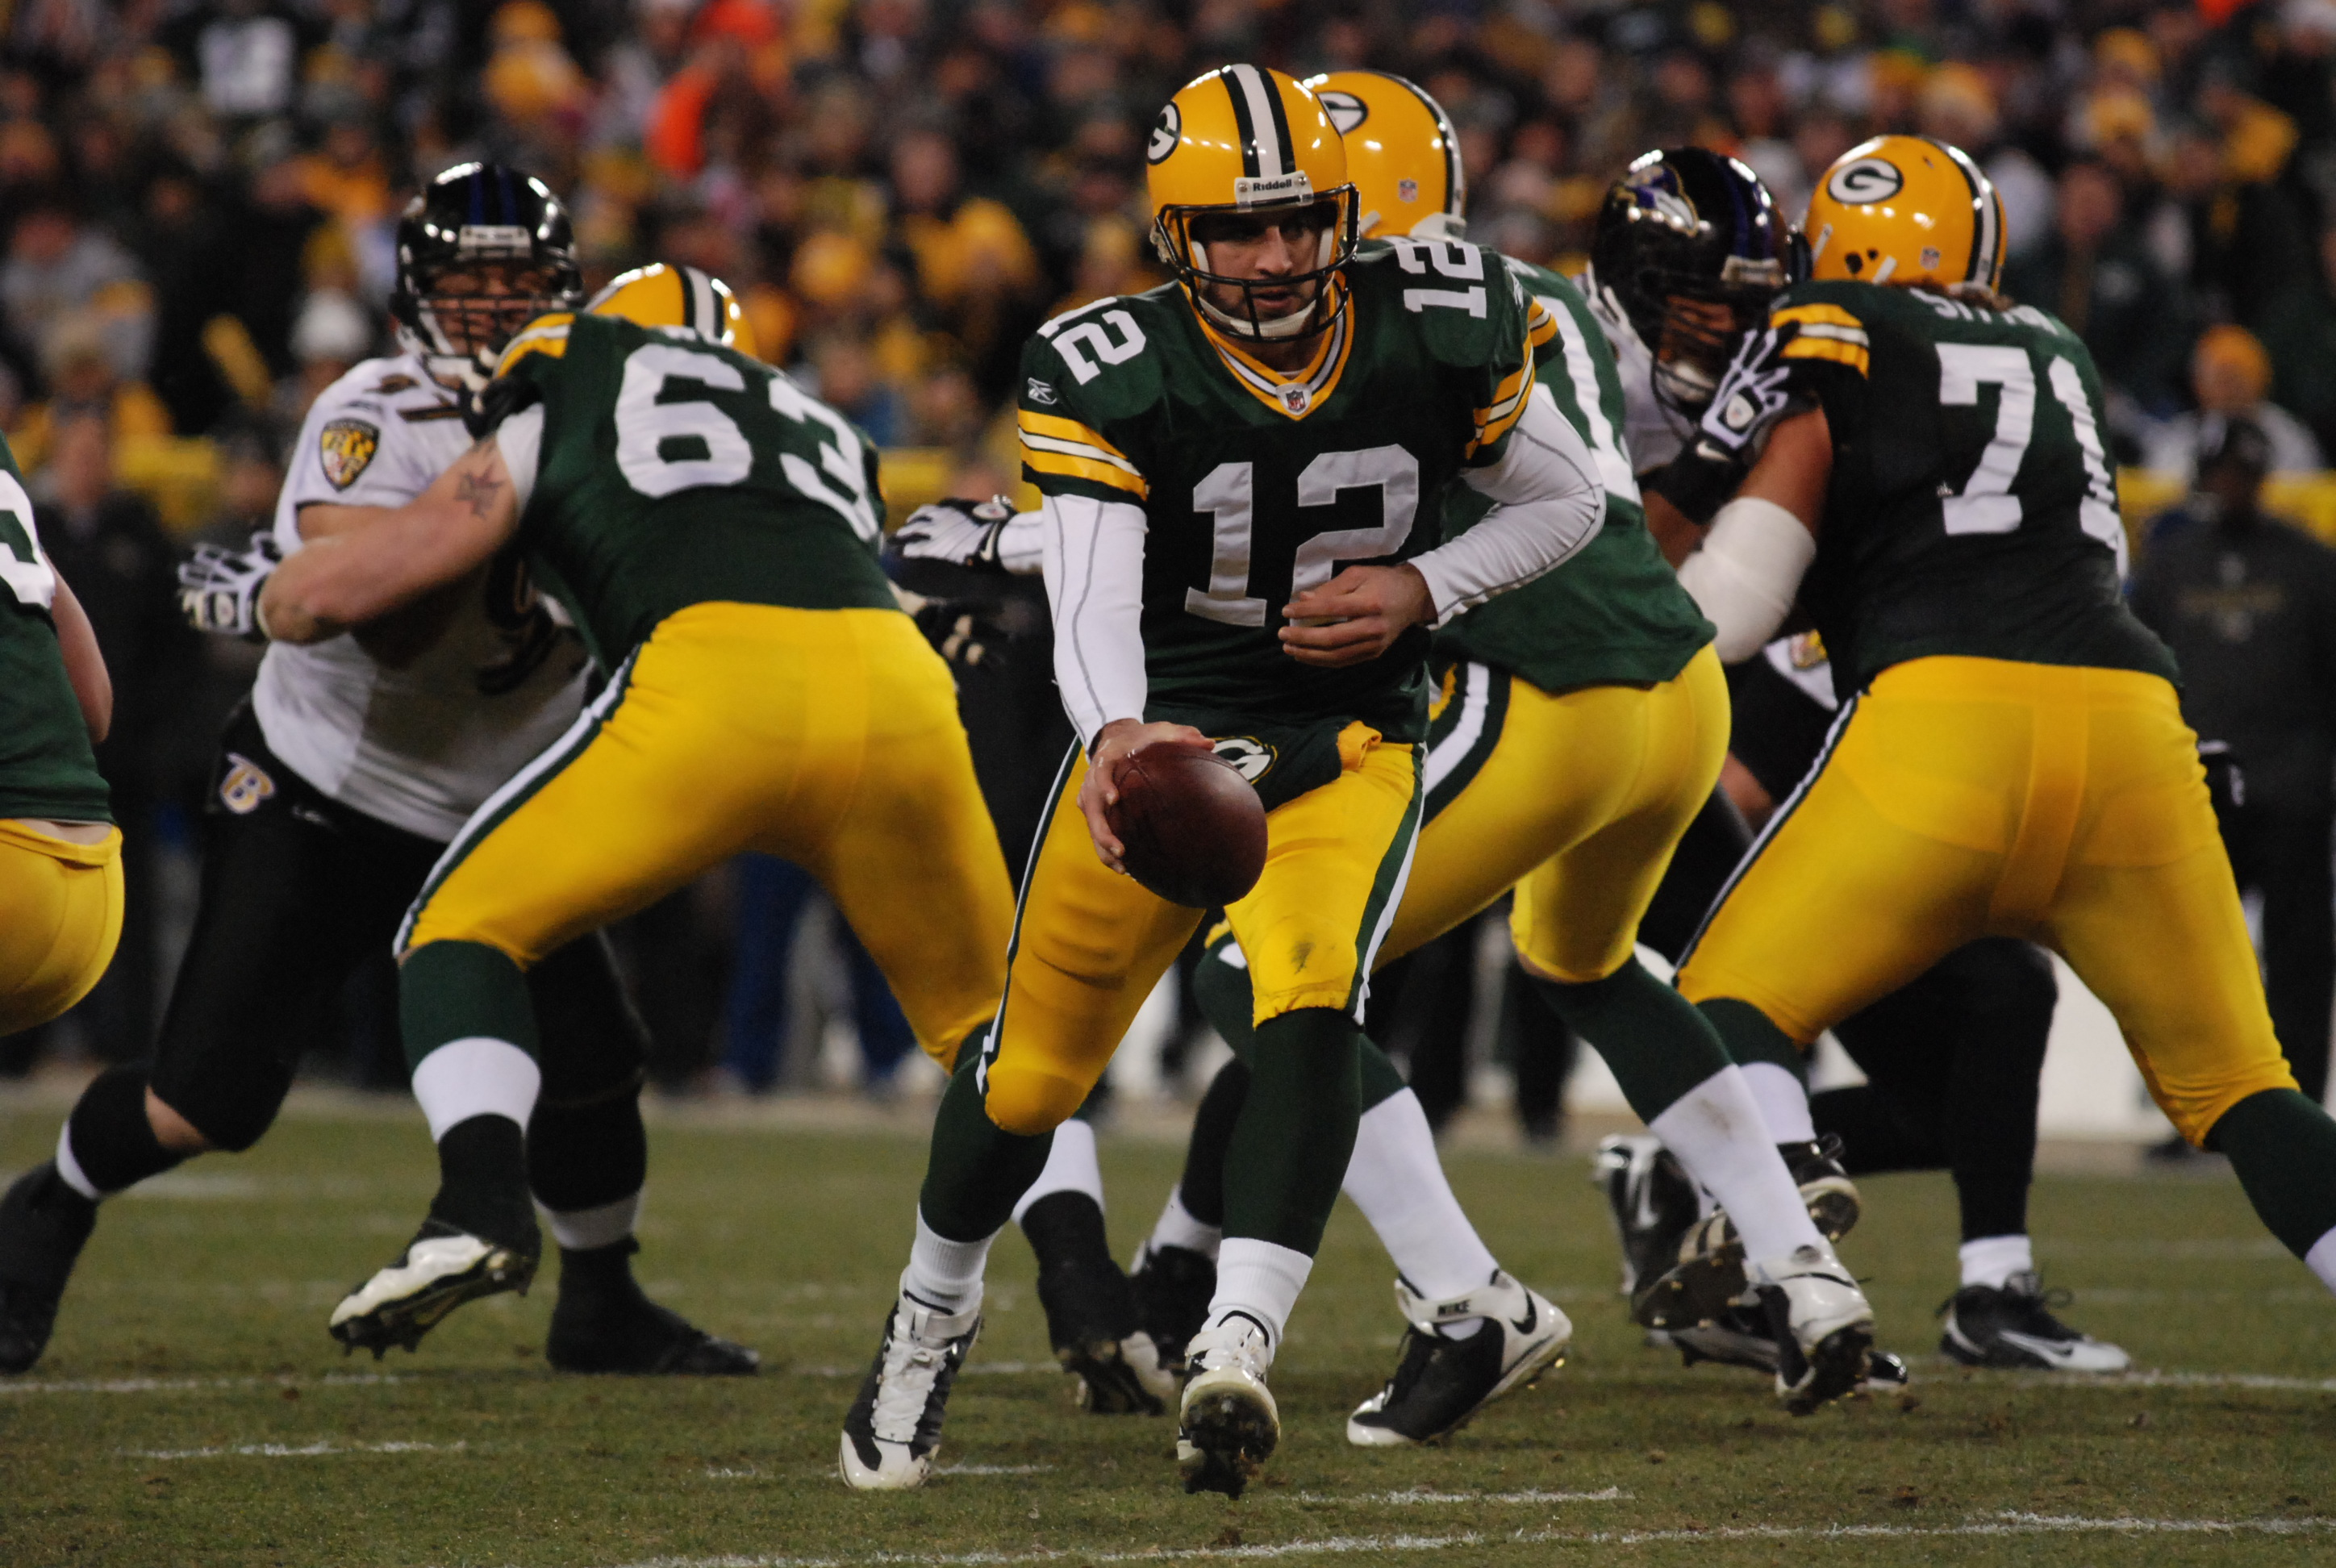 Aaron Rodgers ... what will the near future bring for the Packers' and the NFL's all-world QB? Raymond T. Rivard photograph